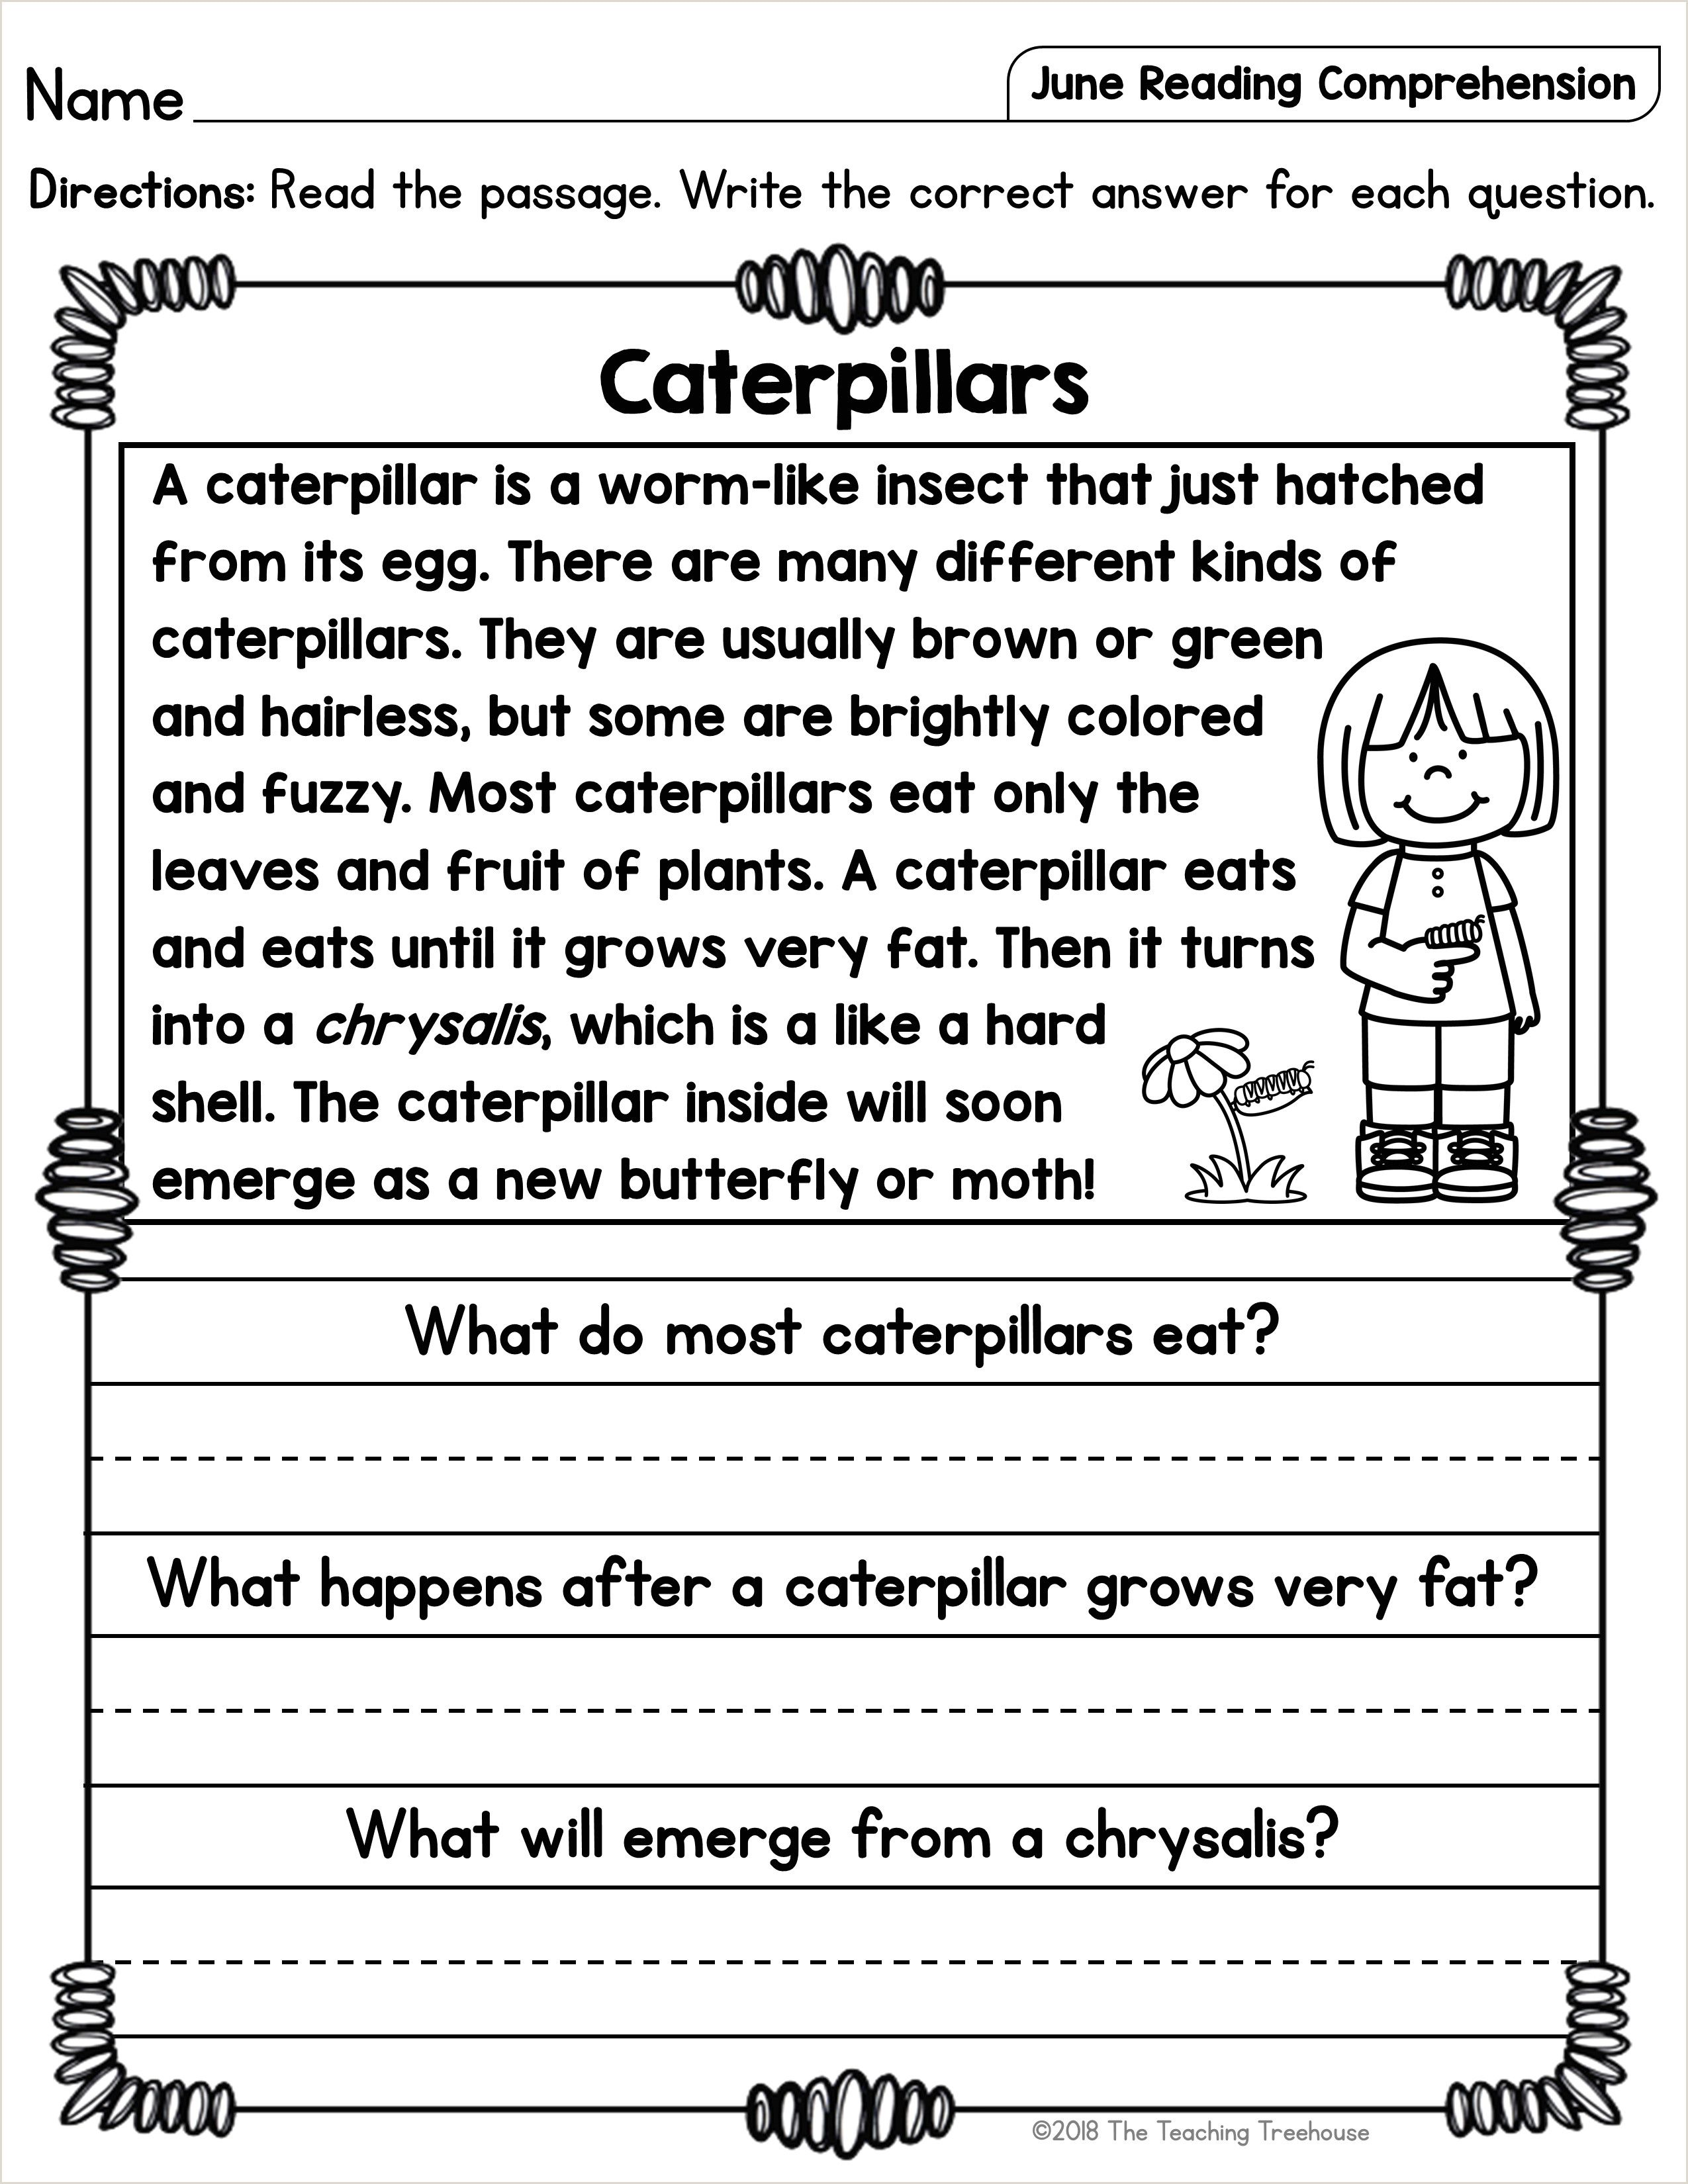 Free Printable Reading Worksheets For Kindergarten And First Grade Reading Comprehension Worksheets Reading Comprehension Kindergarten Reading Worksheets Free printable reading worksheets